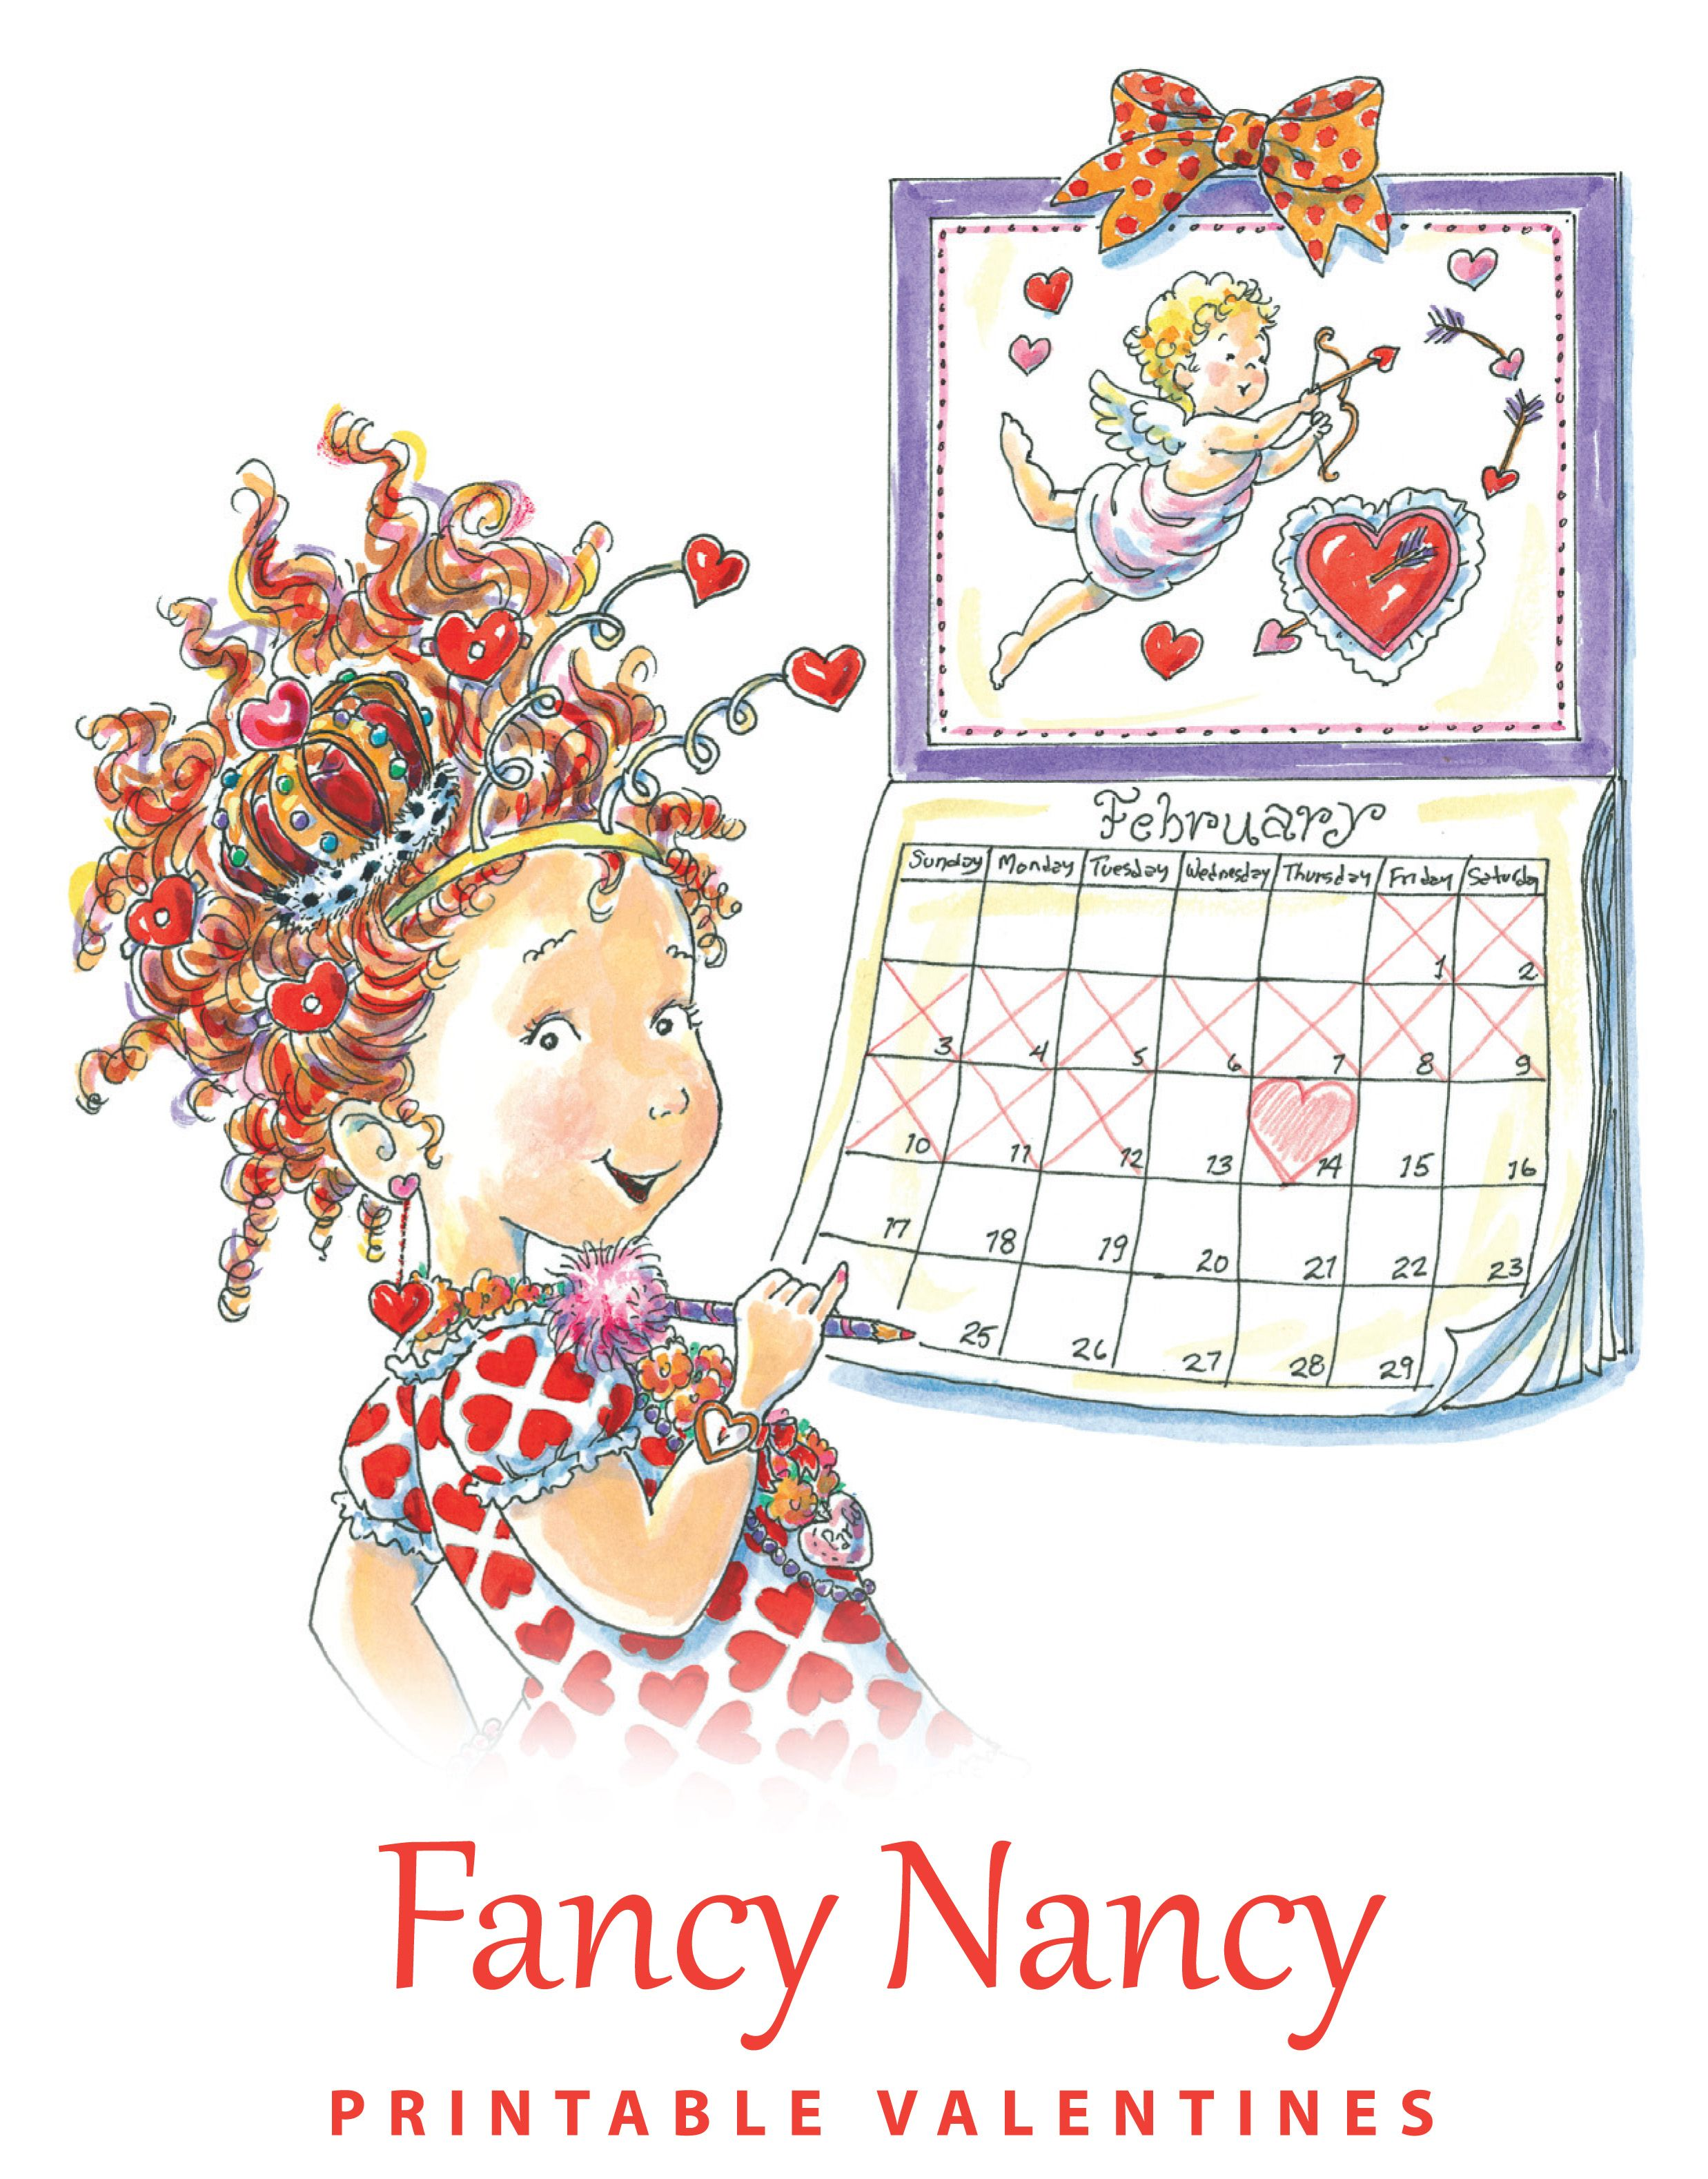 Printable Valentine S Day Cards Featuring Fancy Nancy Click The Pin To Download The Free Cards Fancy Nancy Fancy Nancy Party Valentines Printables Free [ 3157 x 2475 Pixel ]